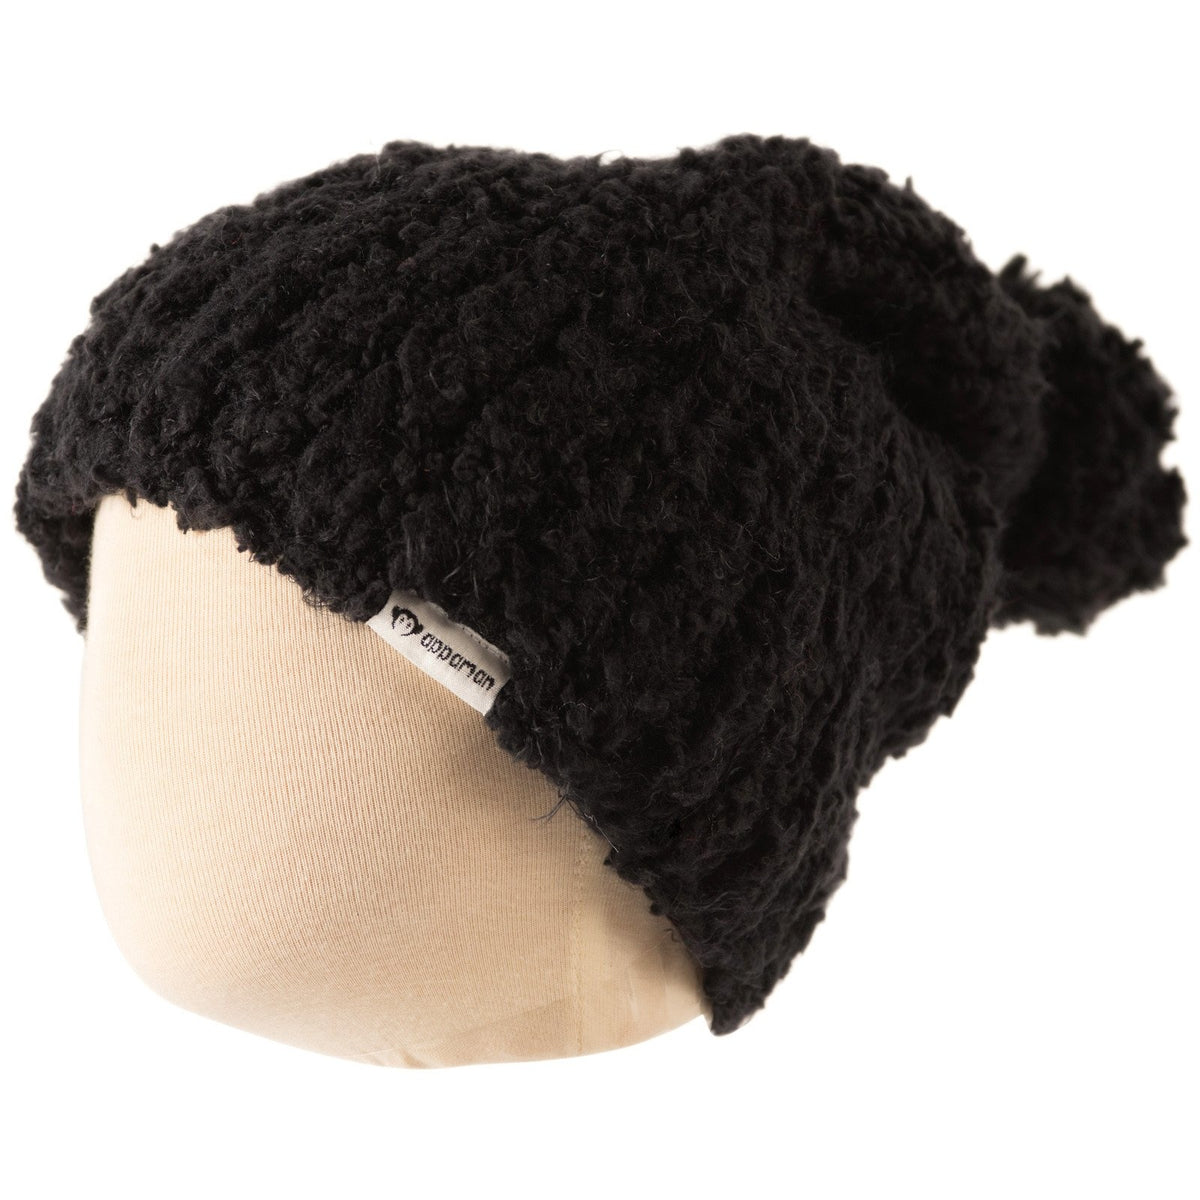 Verger Hat Girl - Petit Atelier Enfant